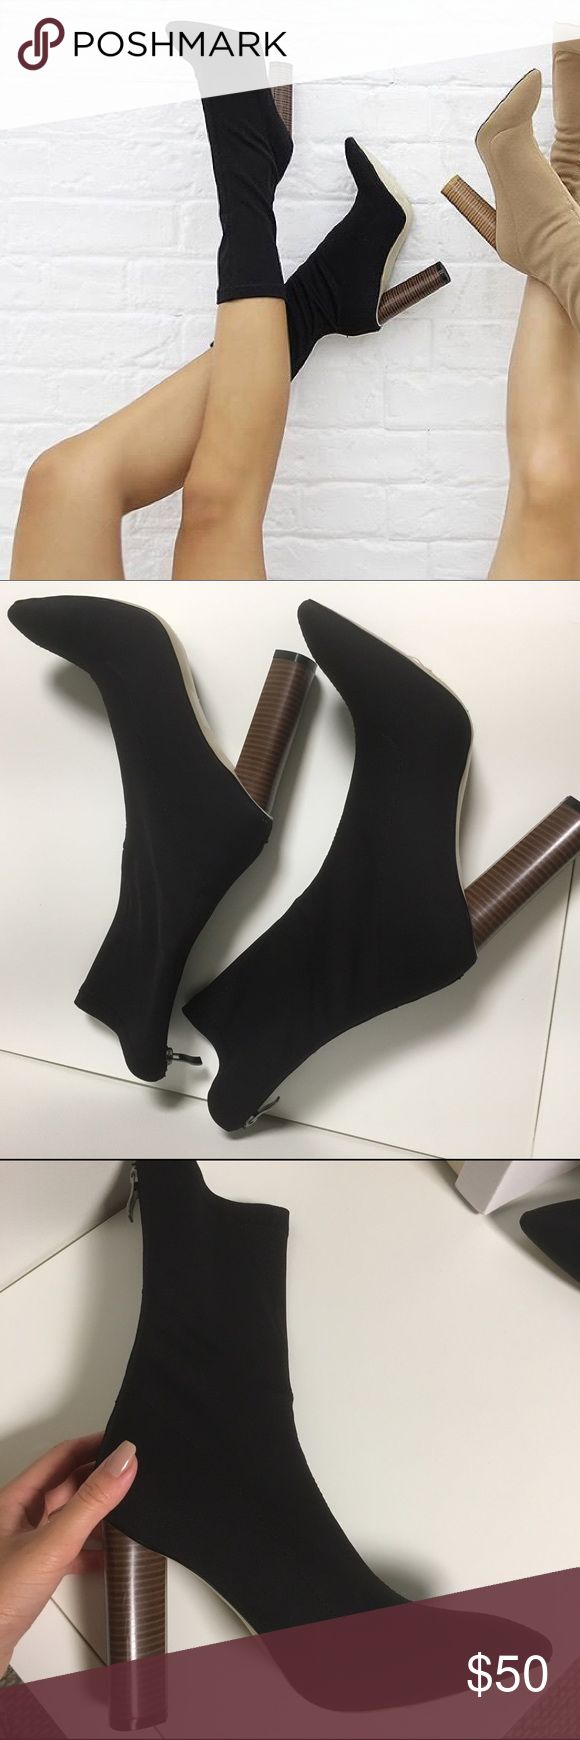 Yeezy Sock Ankle Boots 37 6 black Heels shoes kim Yeezy Sock Ankle Boots Shoes Seen on Kim Kardashian / Kylie Jenner / Kendal / Khloe / Kayne West Yeezy Show  Black ❤️ NO UNREASONABLE OFFERS YOU WILL BE BLOCKED THANK YOU ❤️  Size 37 / labeled as a size 6 US on the box.   ( 37 EU is actually a size 6.5 US).   Heel measures approximately 4 inches/ 10.16cm  Never worn before new in box Heel is a little high for me Shoes Ankle Boots & Booties